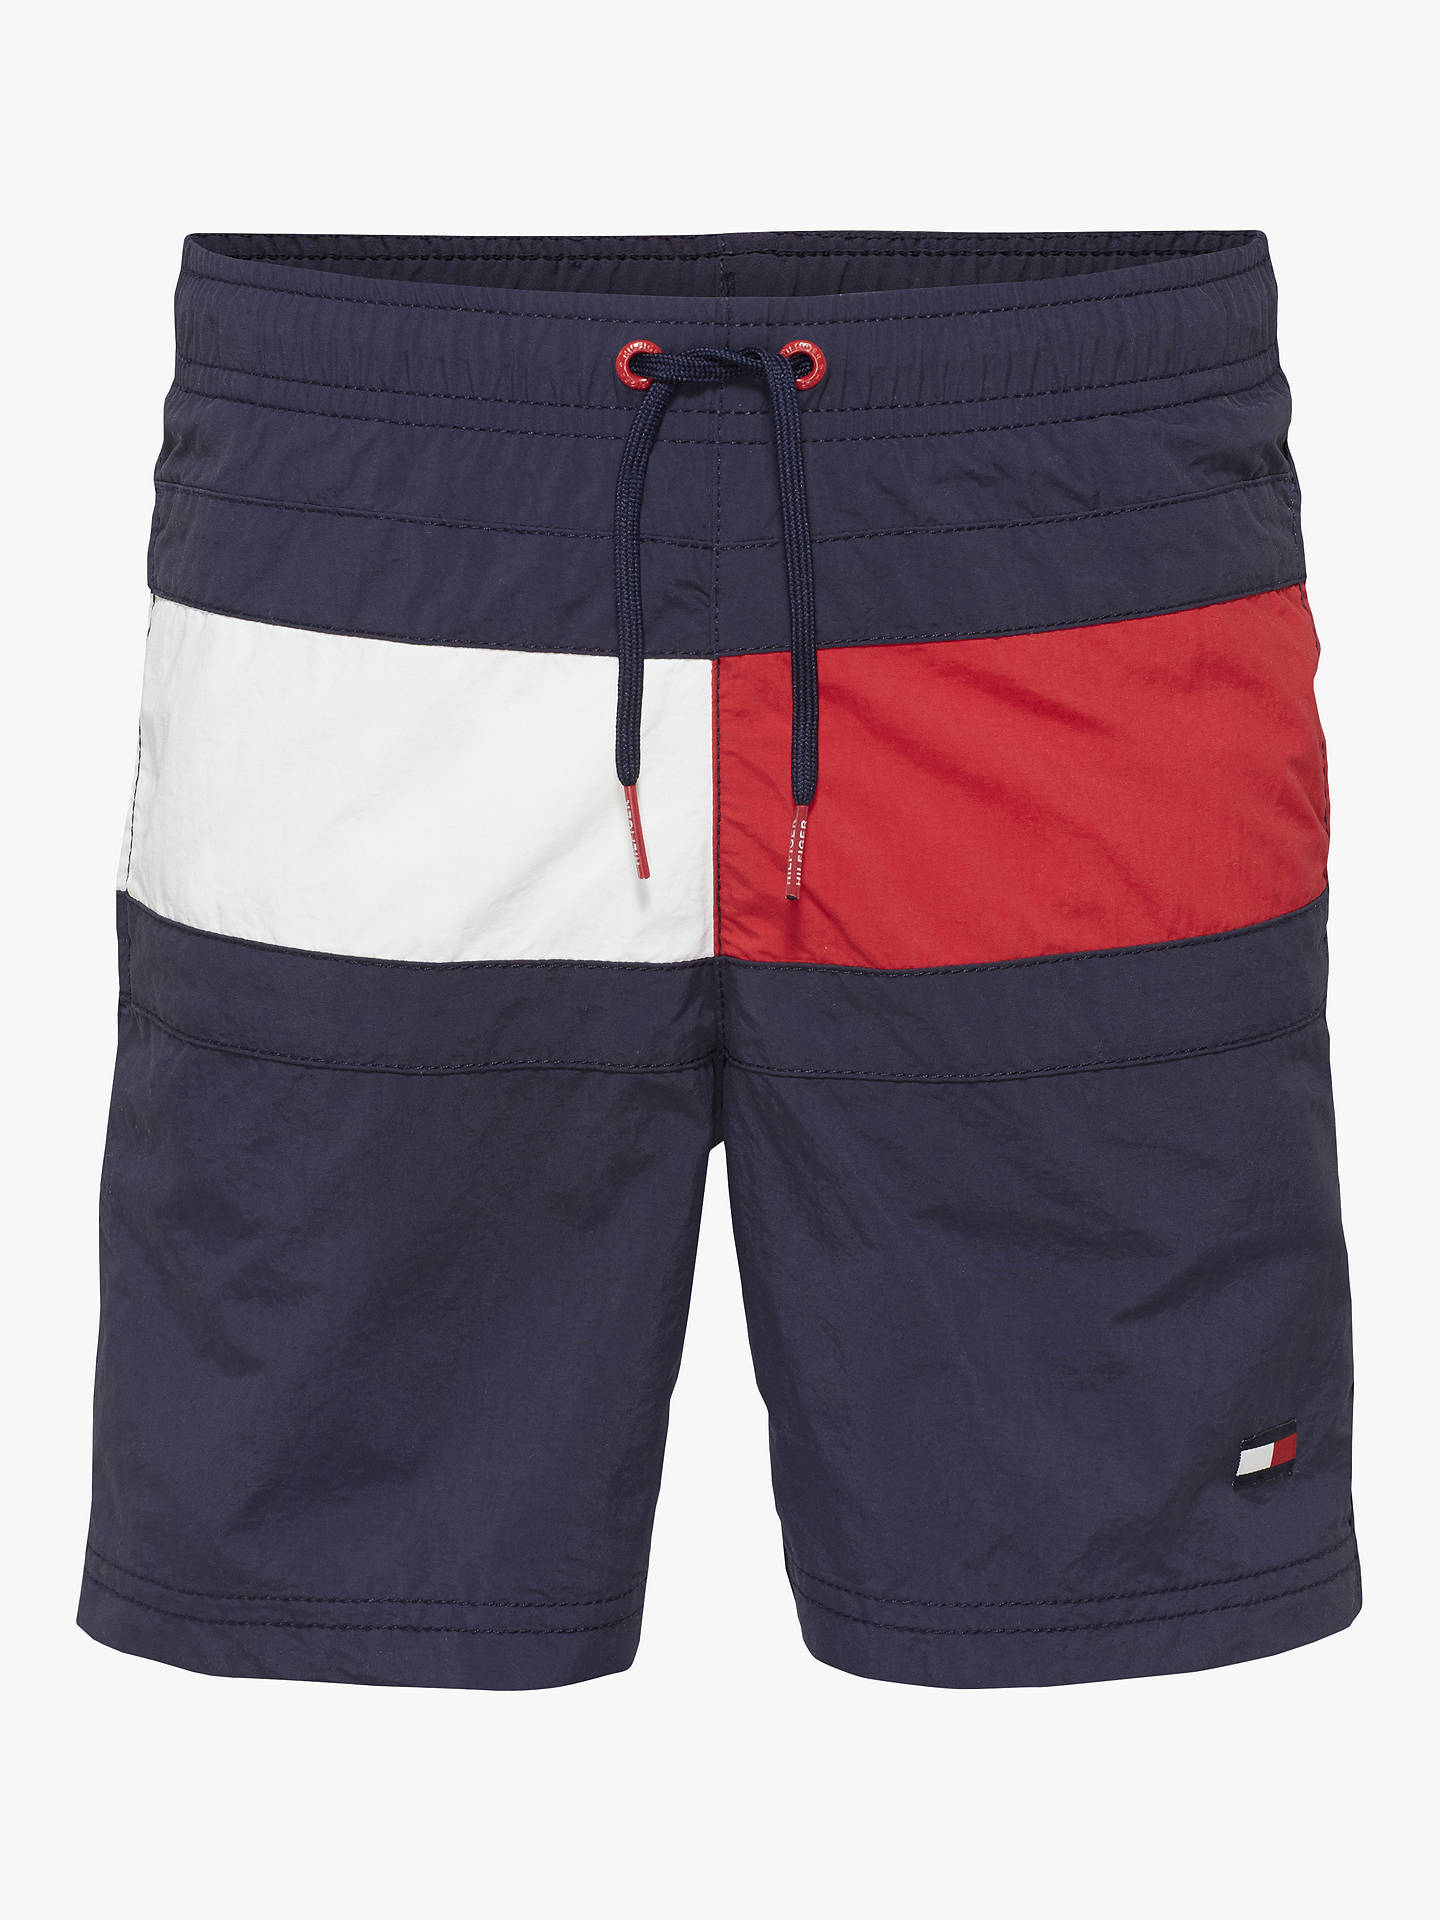 ea9ca0871 Buy Tommy Hilfiger Boys' Flag Swimming Shorts, Navy, 10-12 years Online ...